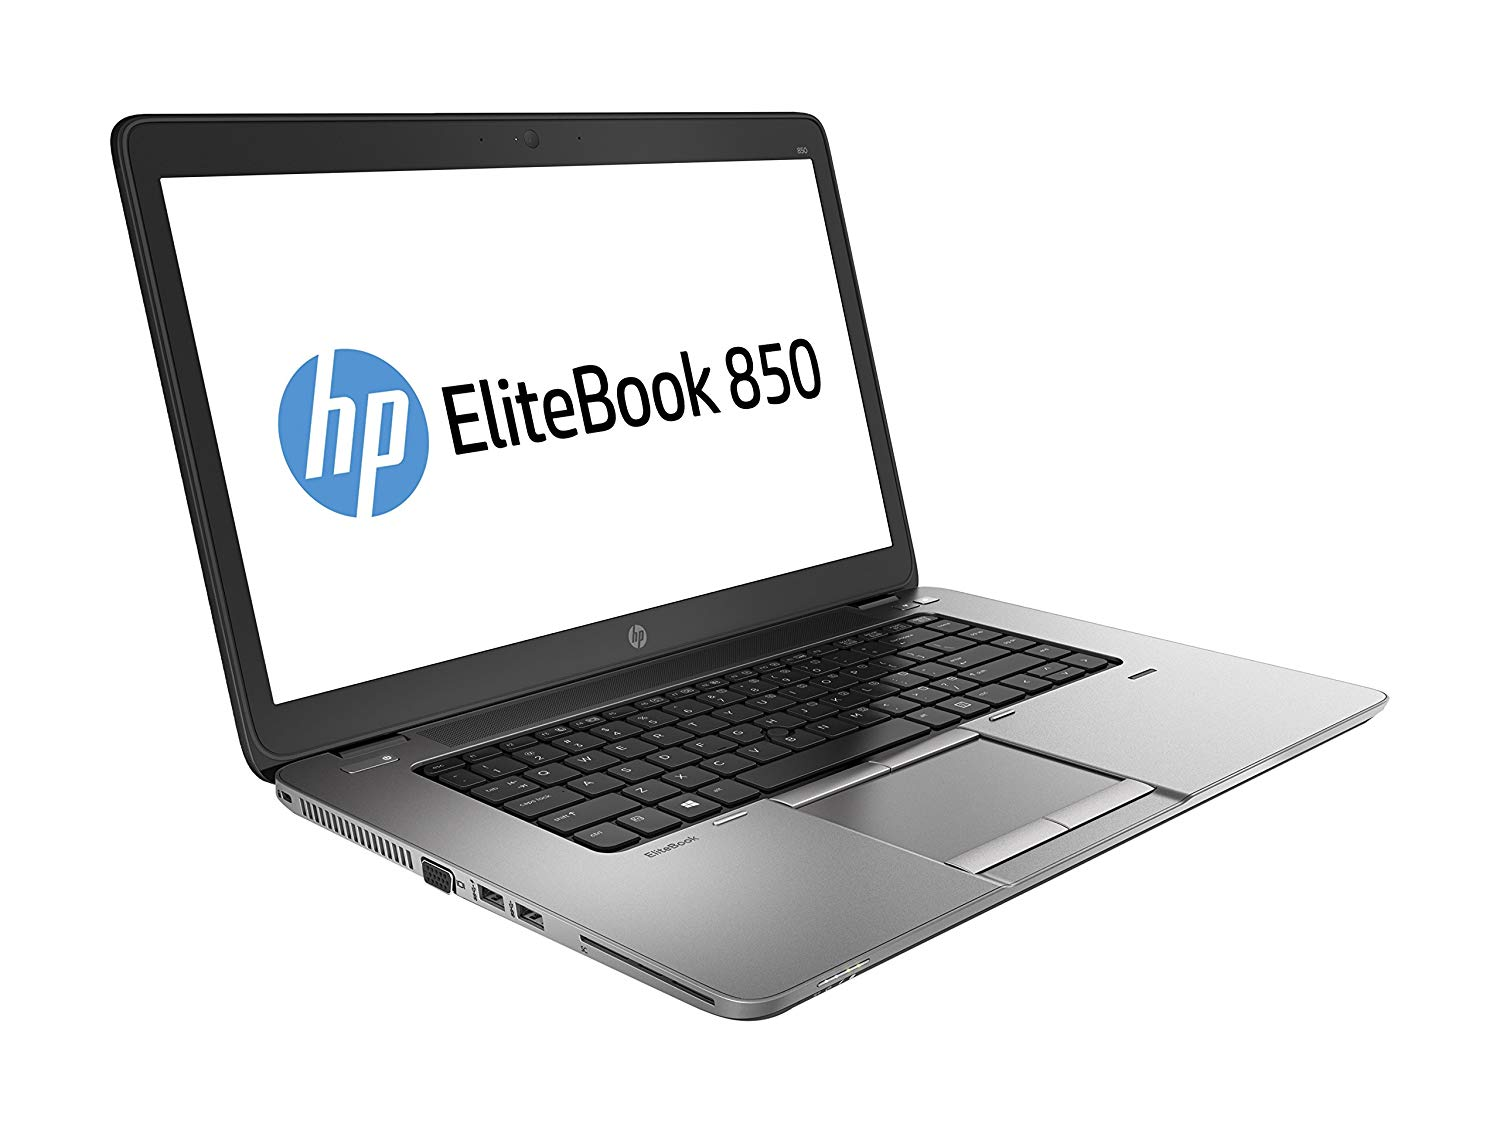 EB HP CORE I5-4300U 8GB 128GB W10P